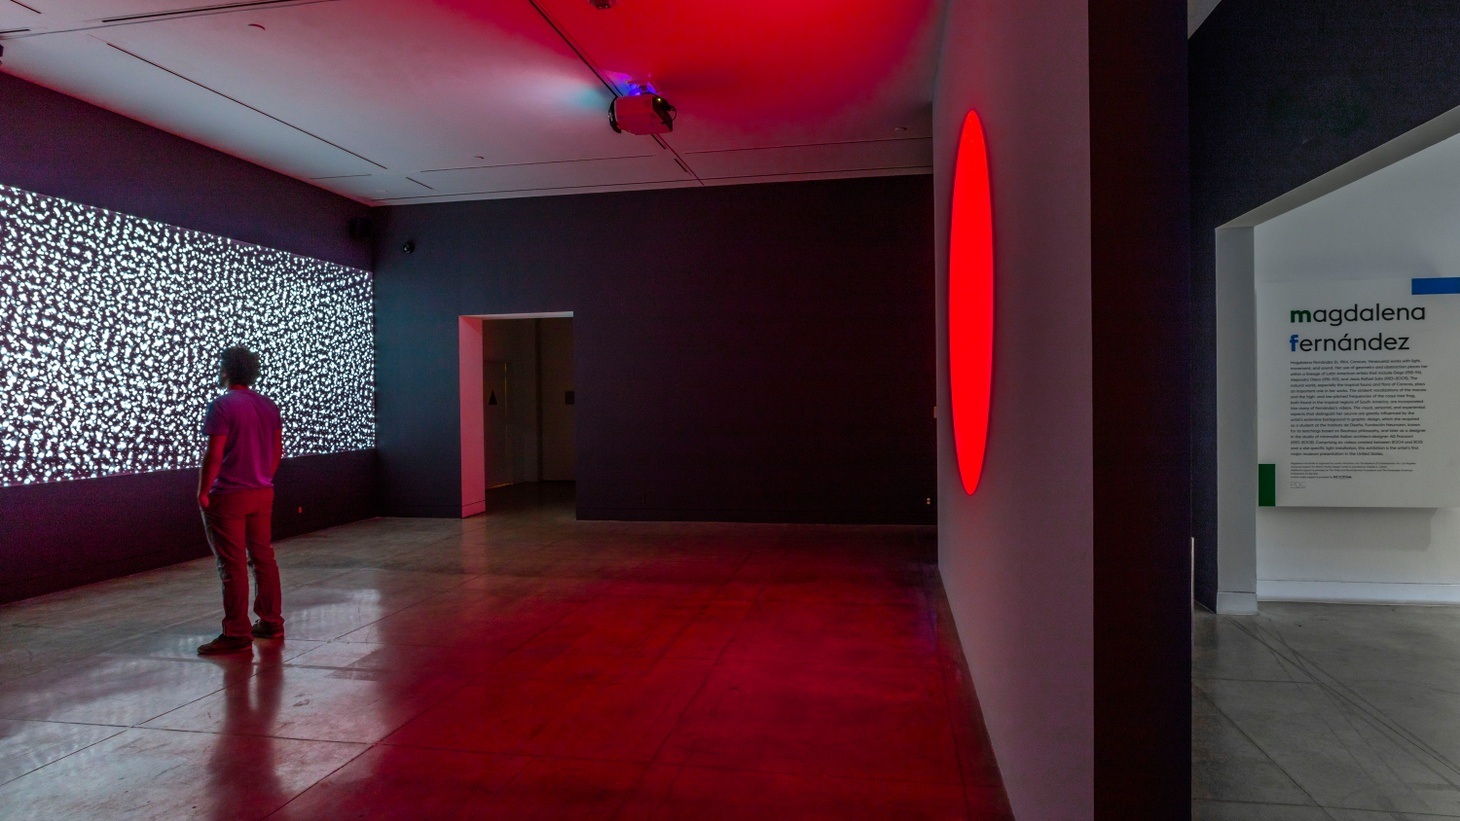 Hunter Drohojowska-Philp talks about the Venezuelan's installation at MOCA PDC and the veteran light and space artist at Kayne Griffin Corcoran.